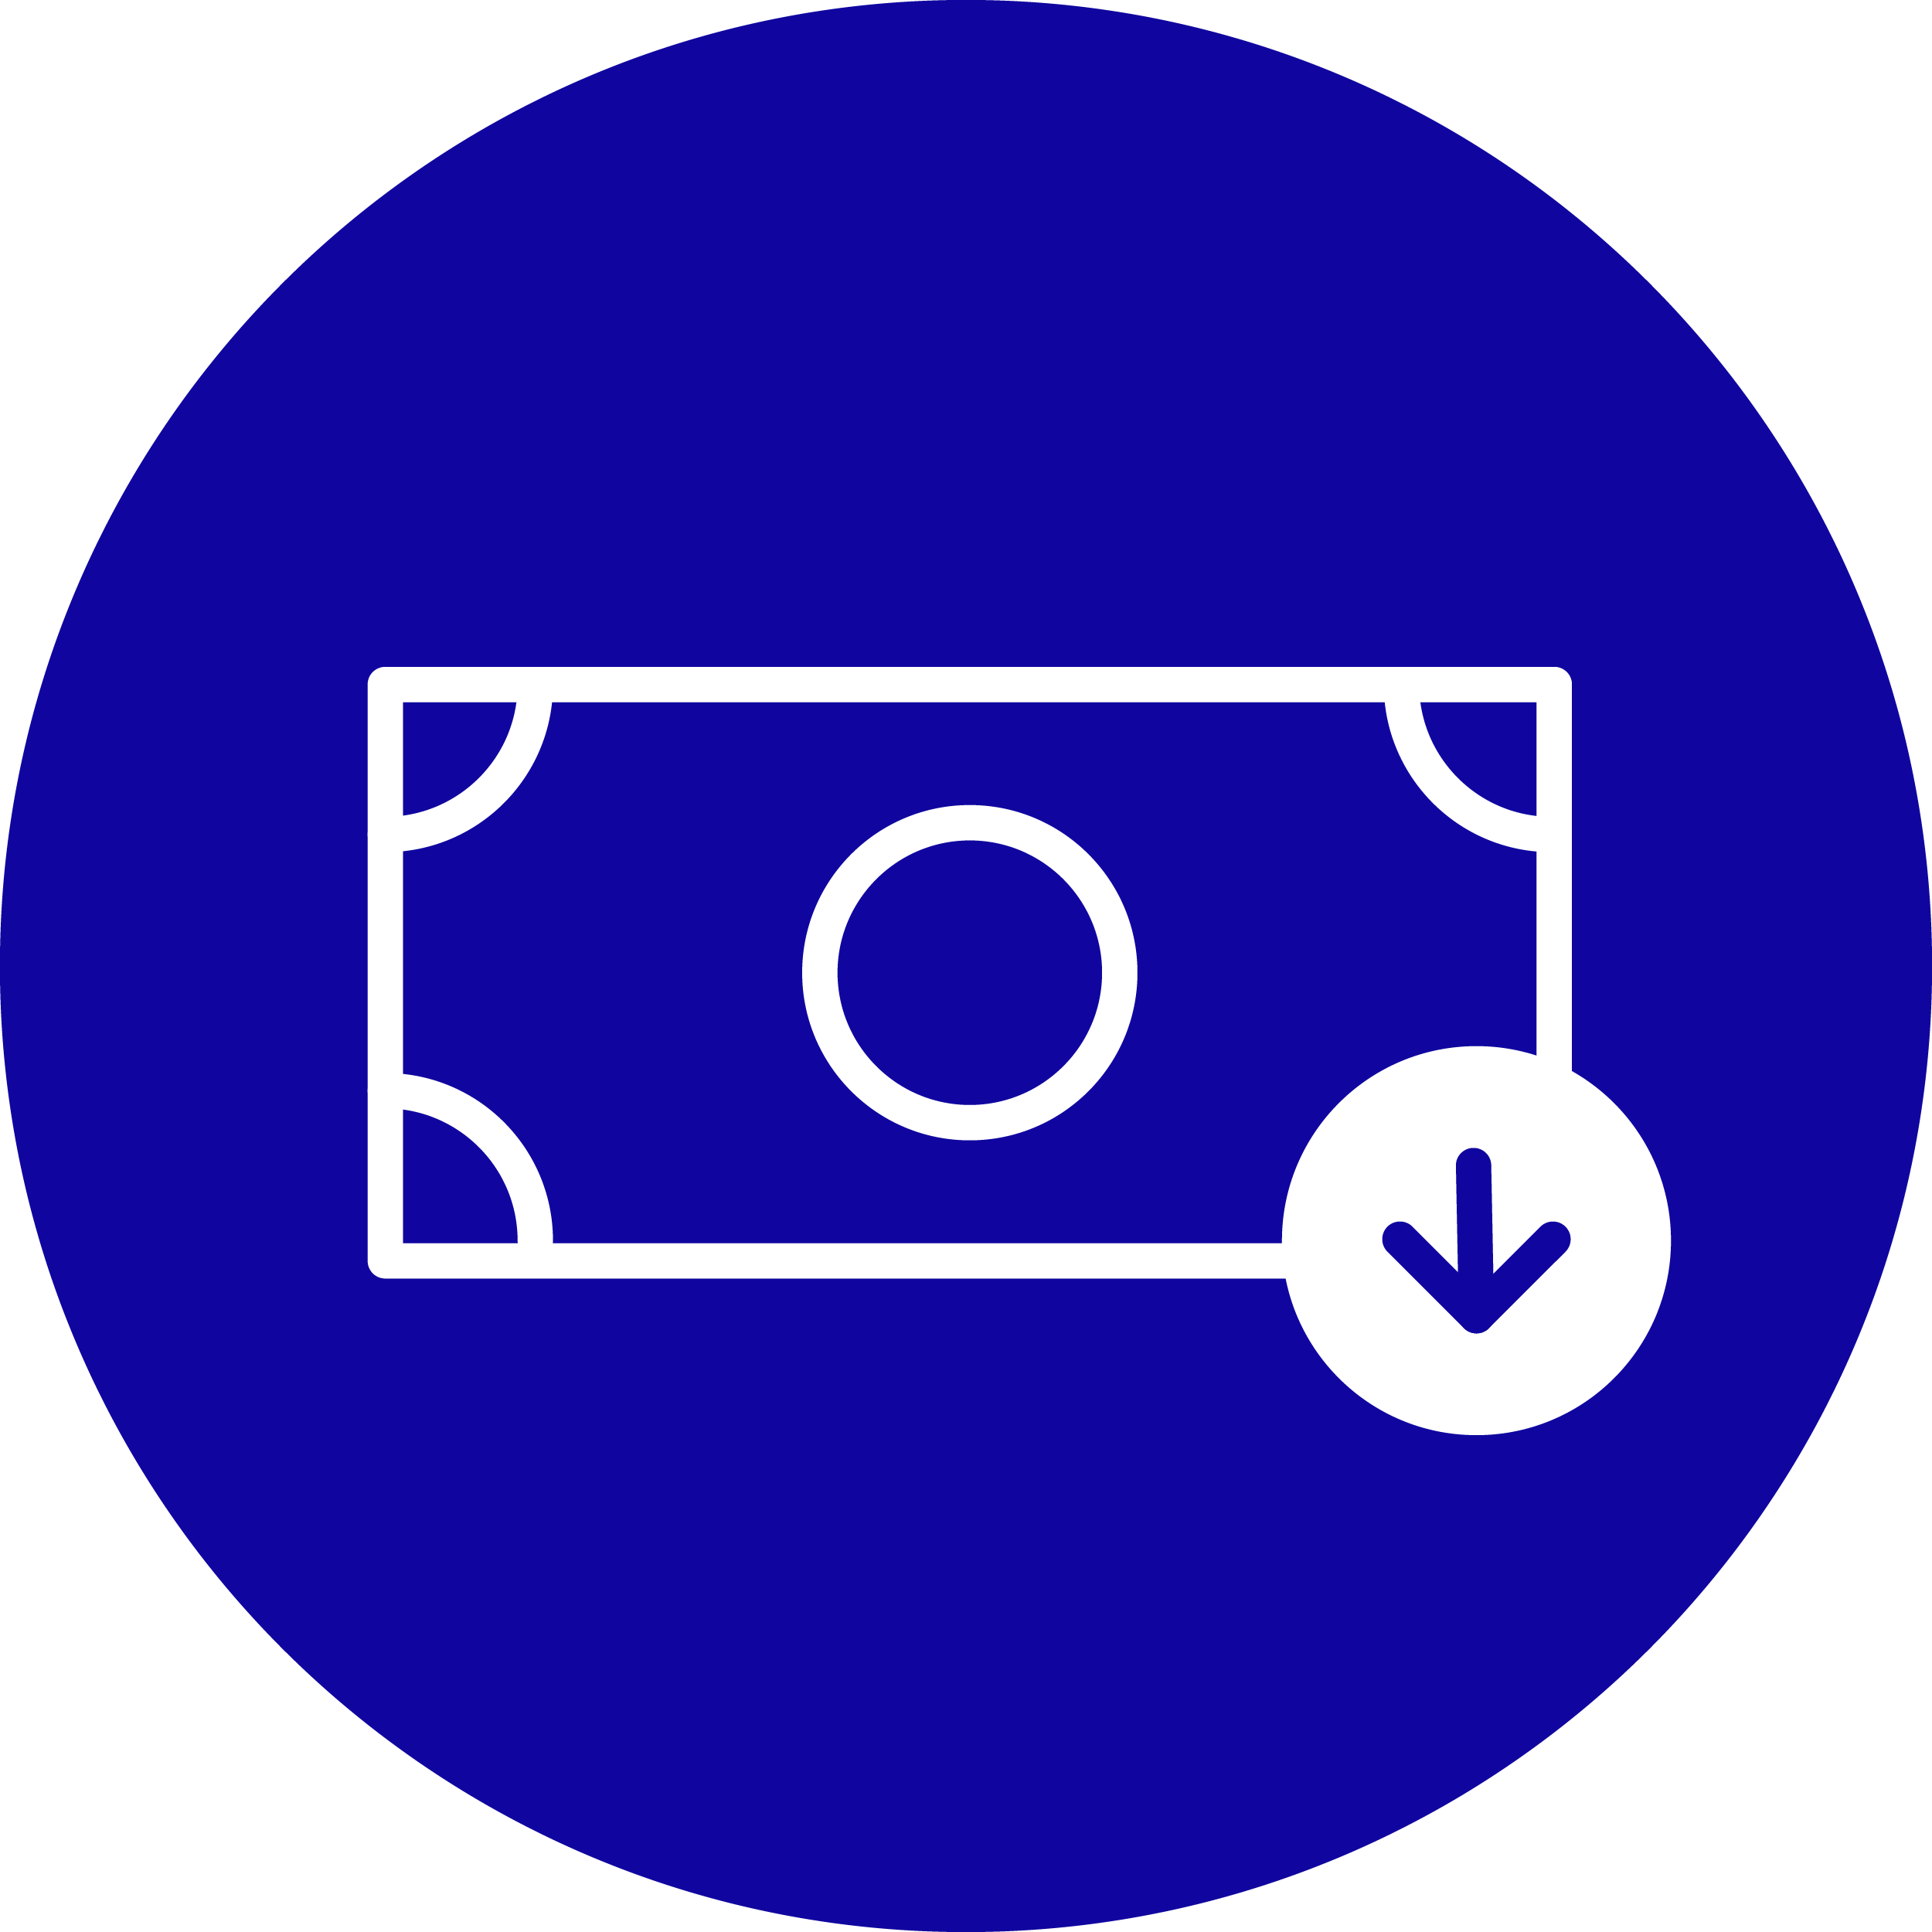 sda_icon_reduce_costs